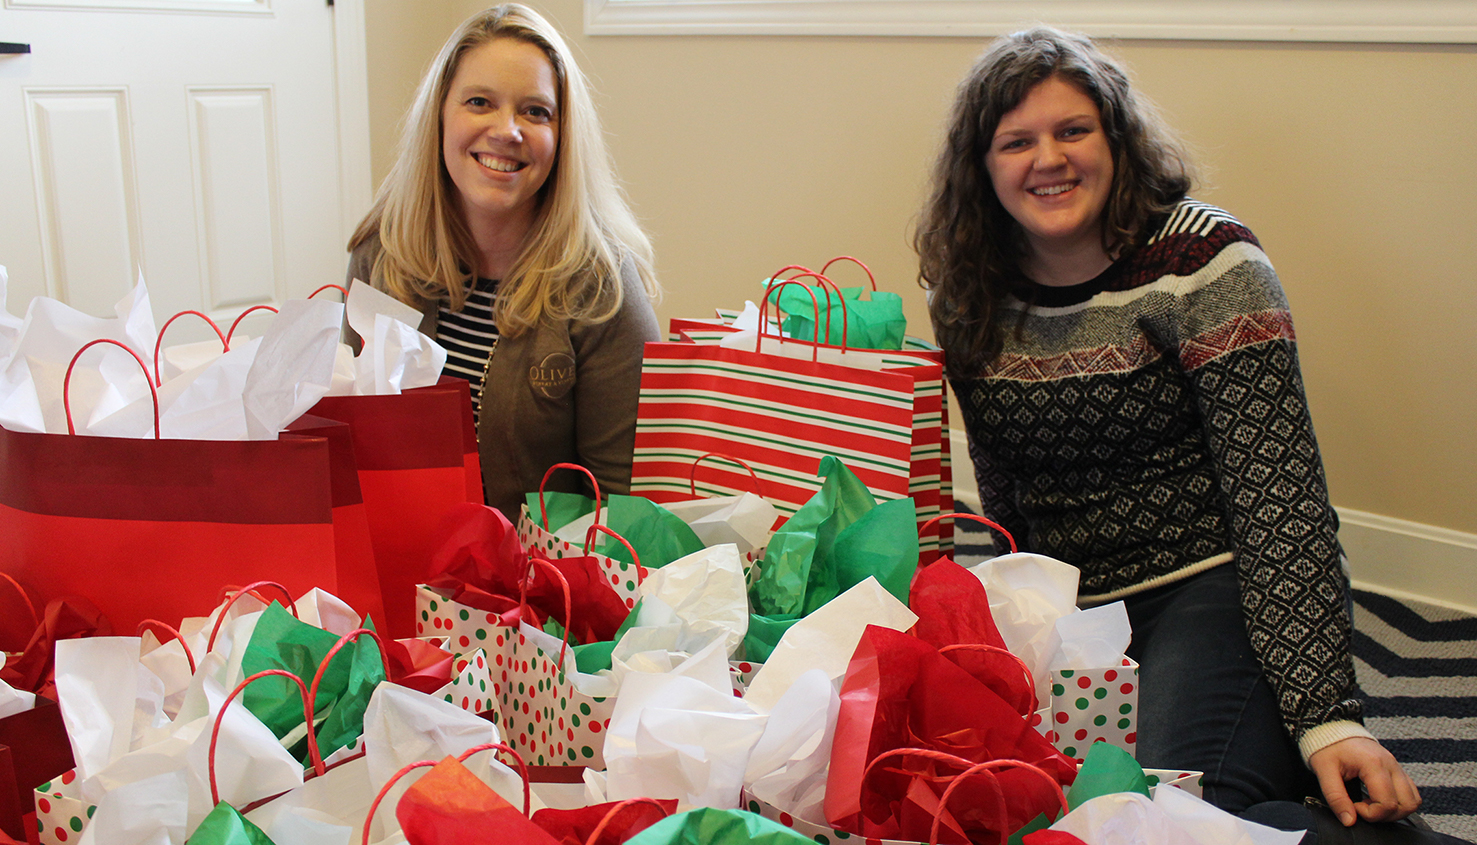 Staff members wrap gifts for families as part of our annual Monroe County United Ministries outreach.